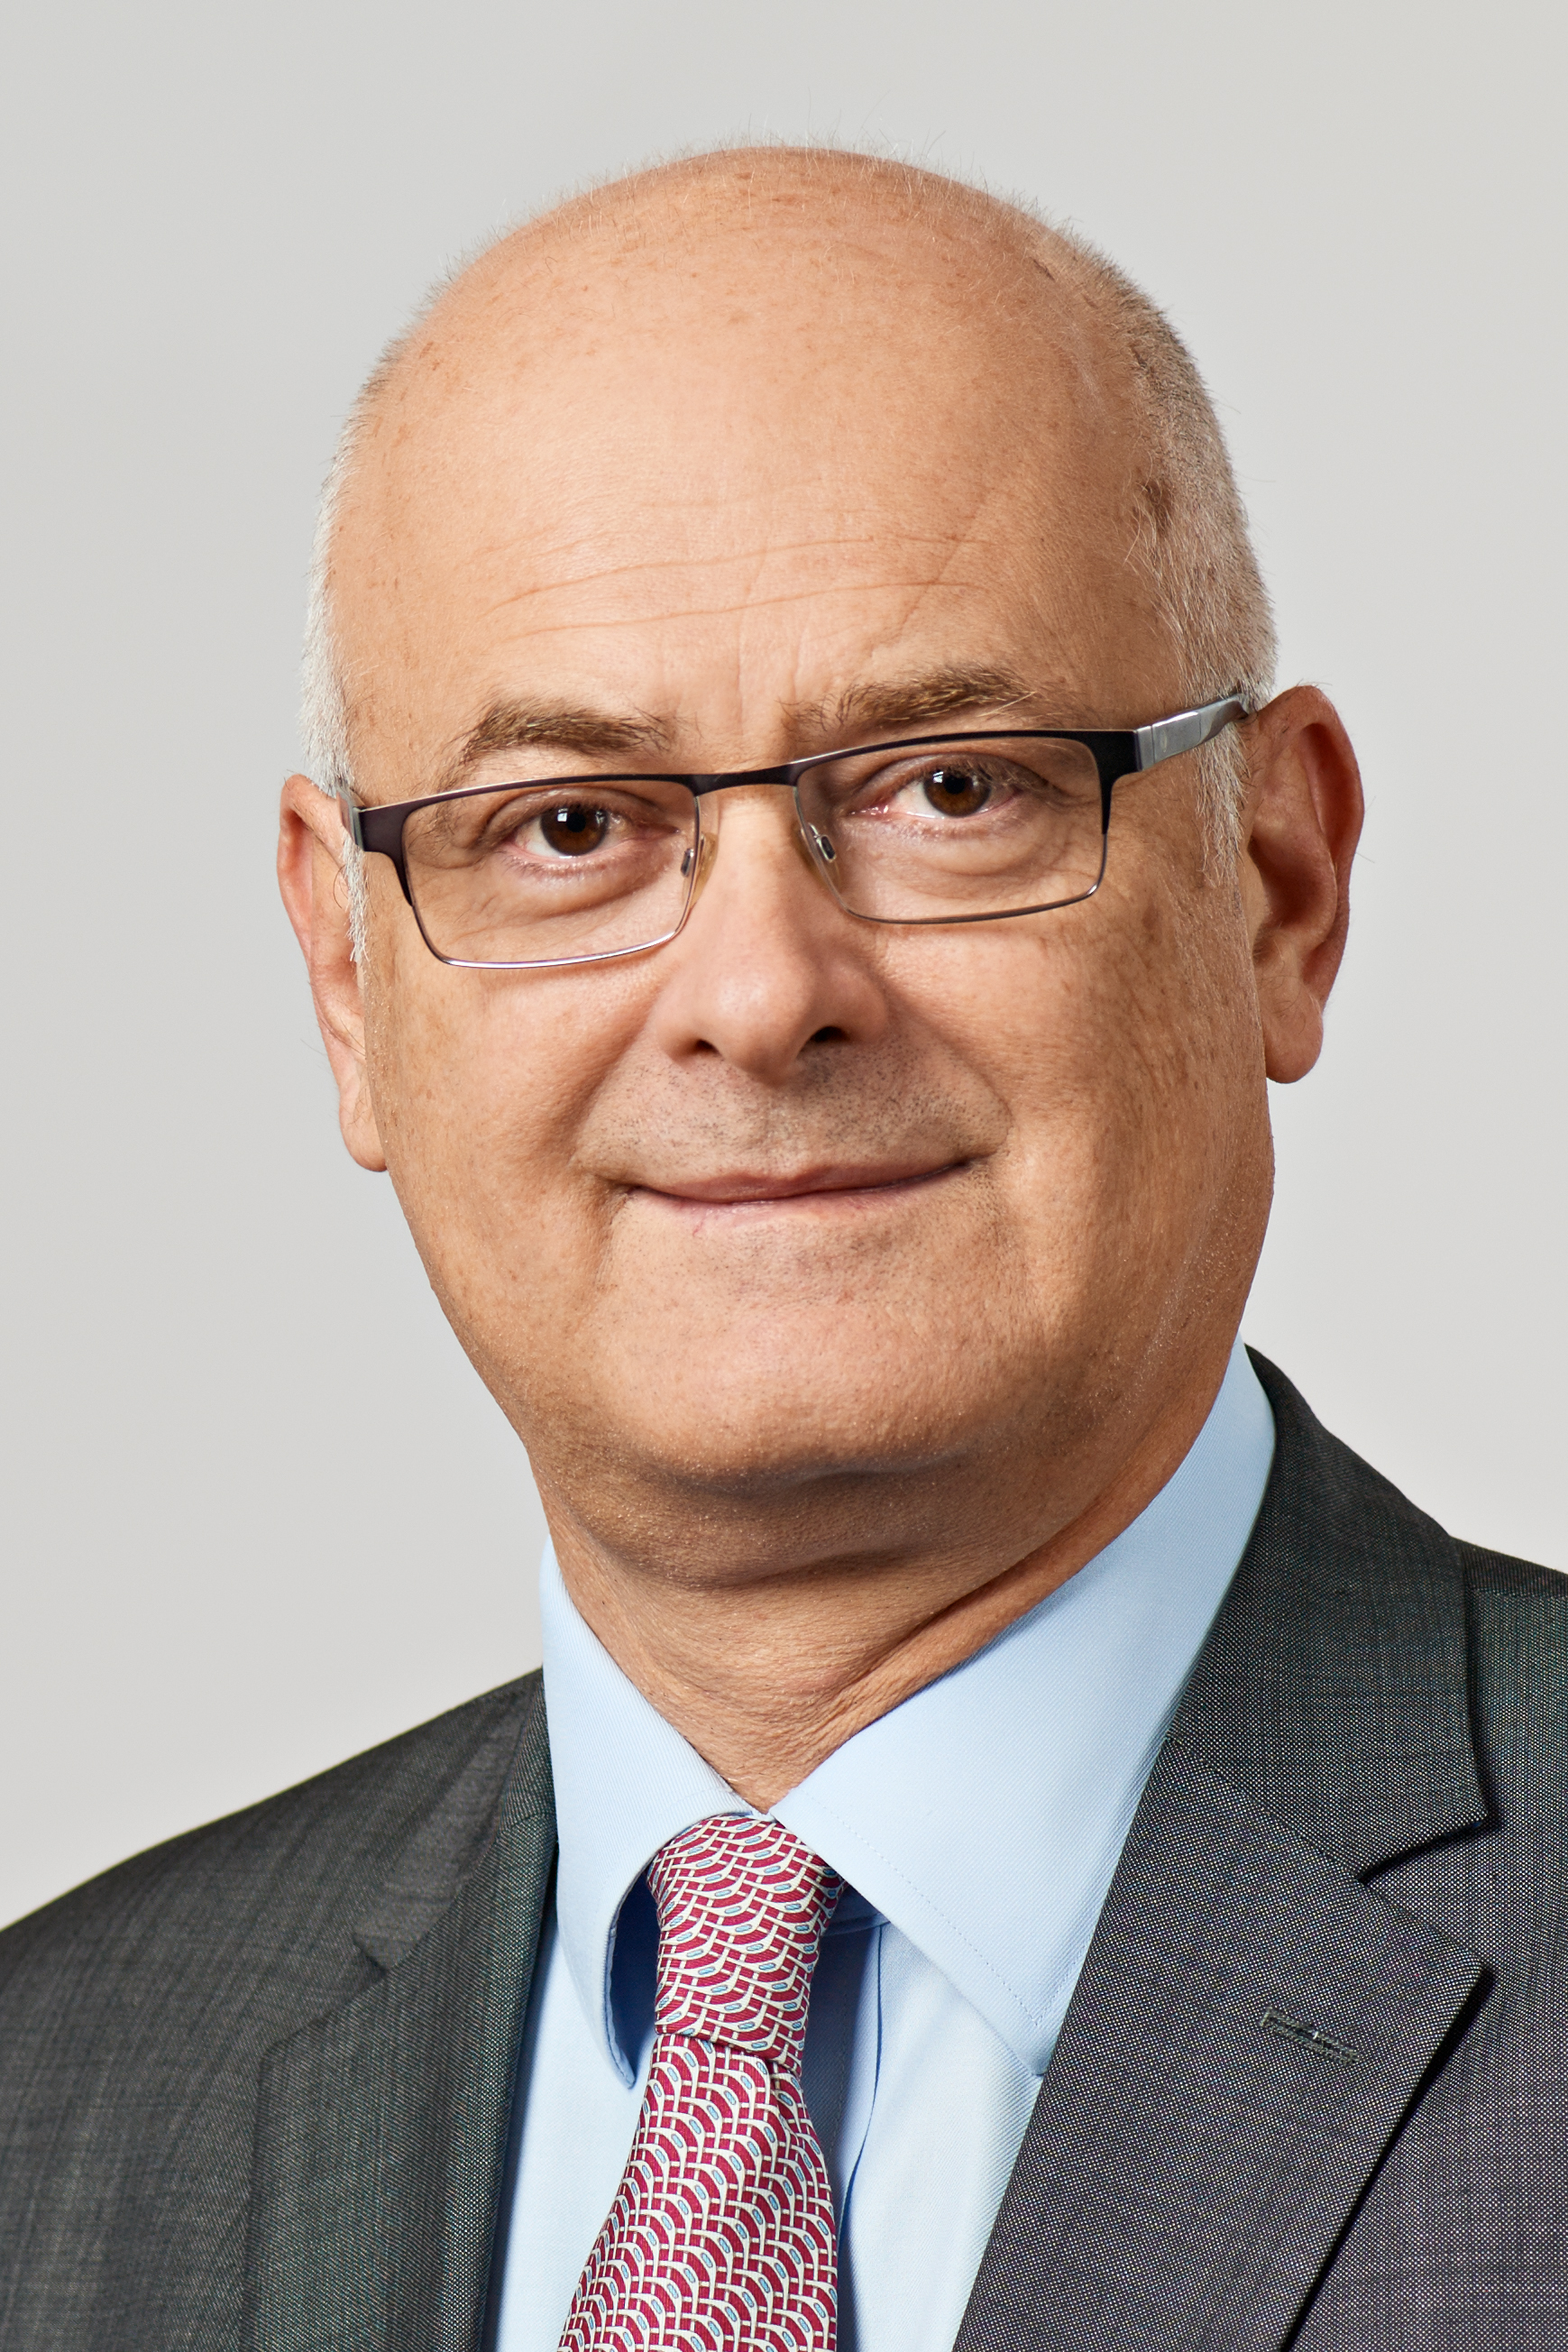 Richard Clemens, General Manager of the Food and Packaging Machinery Division of the Association of German Machine and Plant Manufacturers (Verband Deutscher Maschinen und Anlagenbau – VDMA)